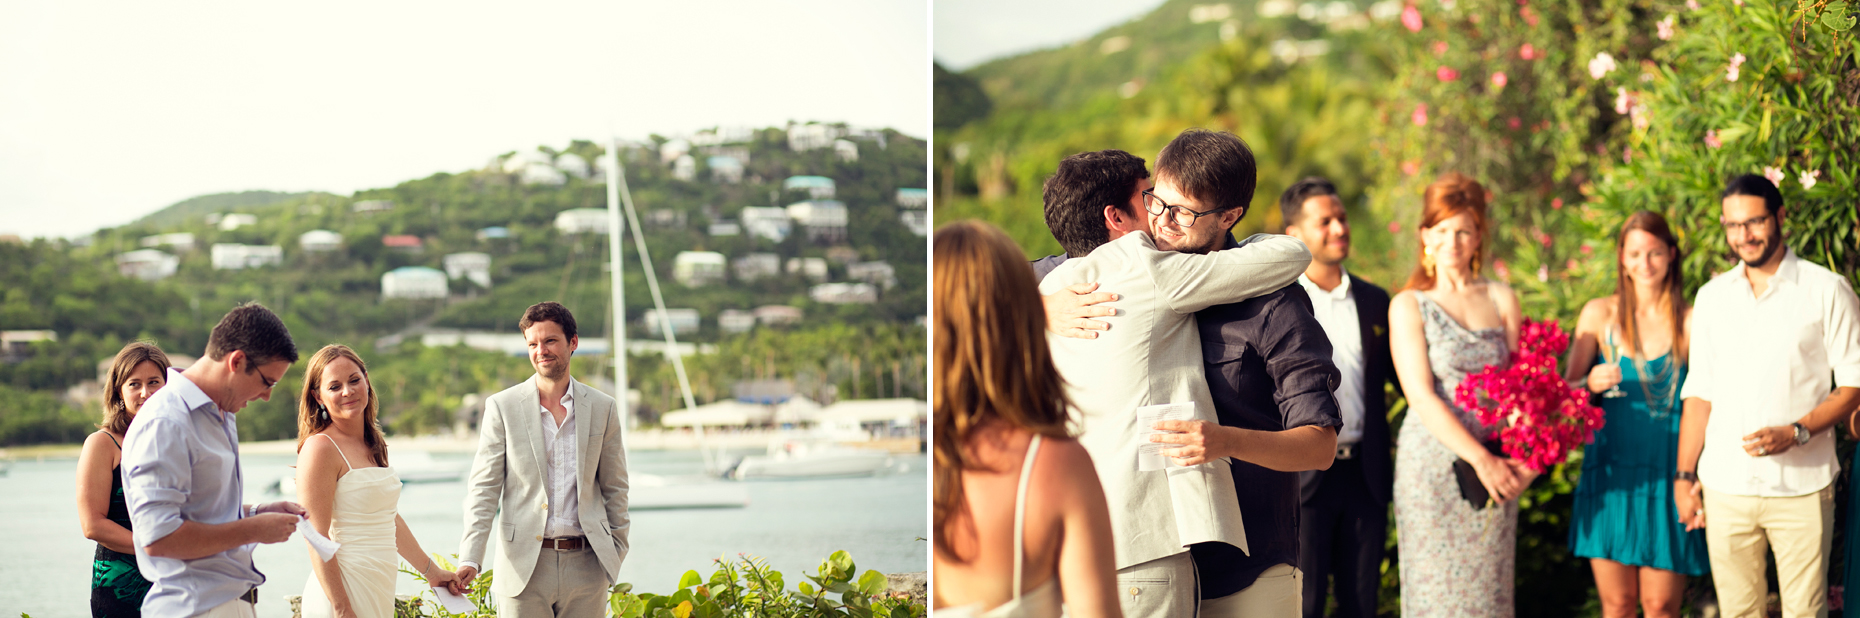 Destination Wedding Photography_VirginIslands_JamiSaunders_025